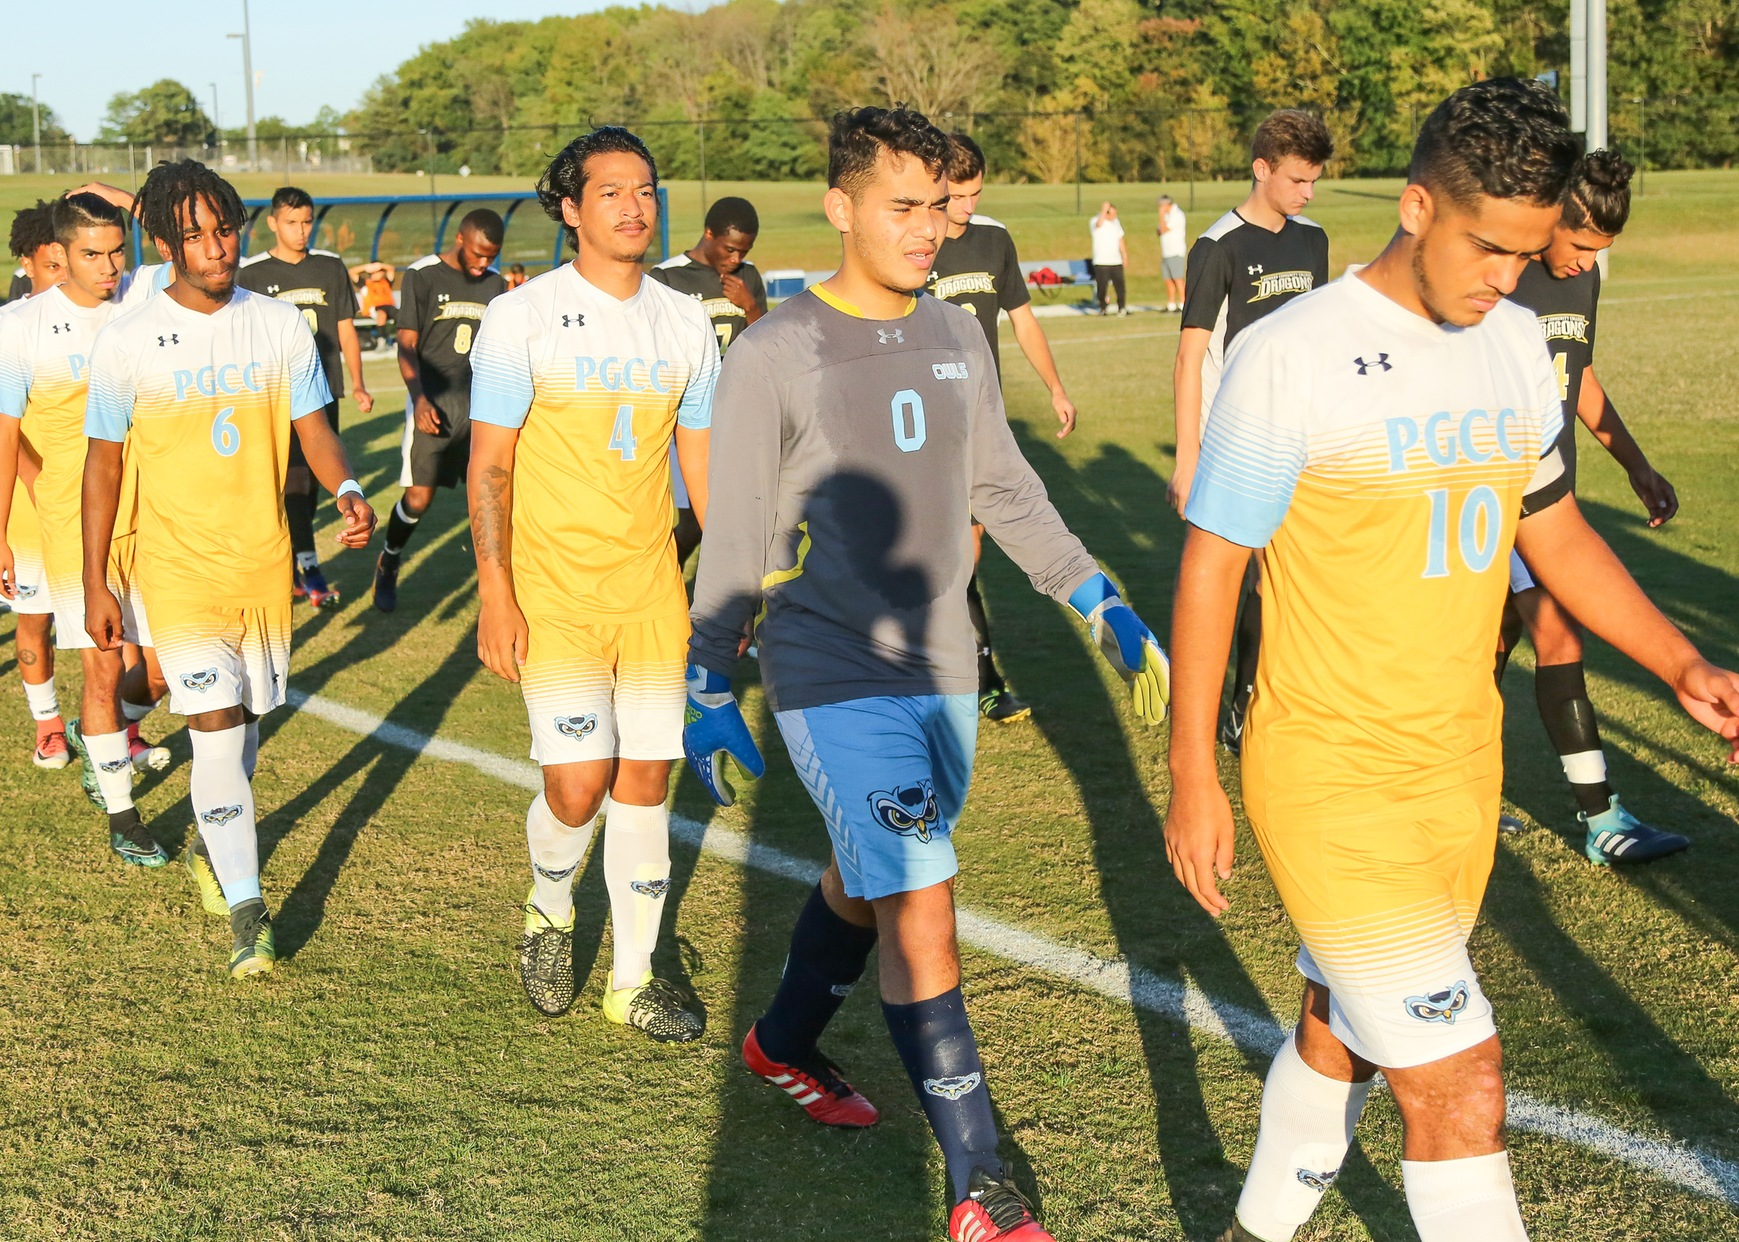 Prince George's Men's Soccer Moves To No. 10 In Latest NJCAA Division III Men's Soccer Rankings